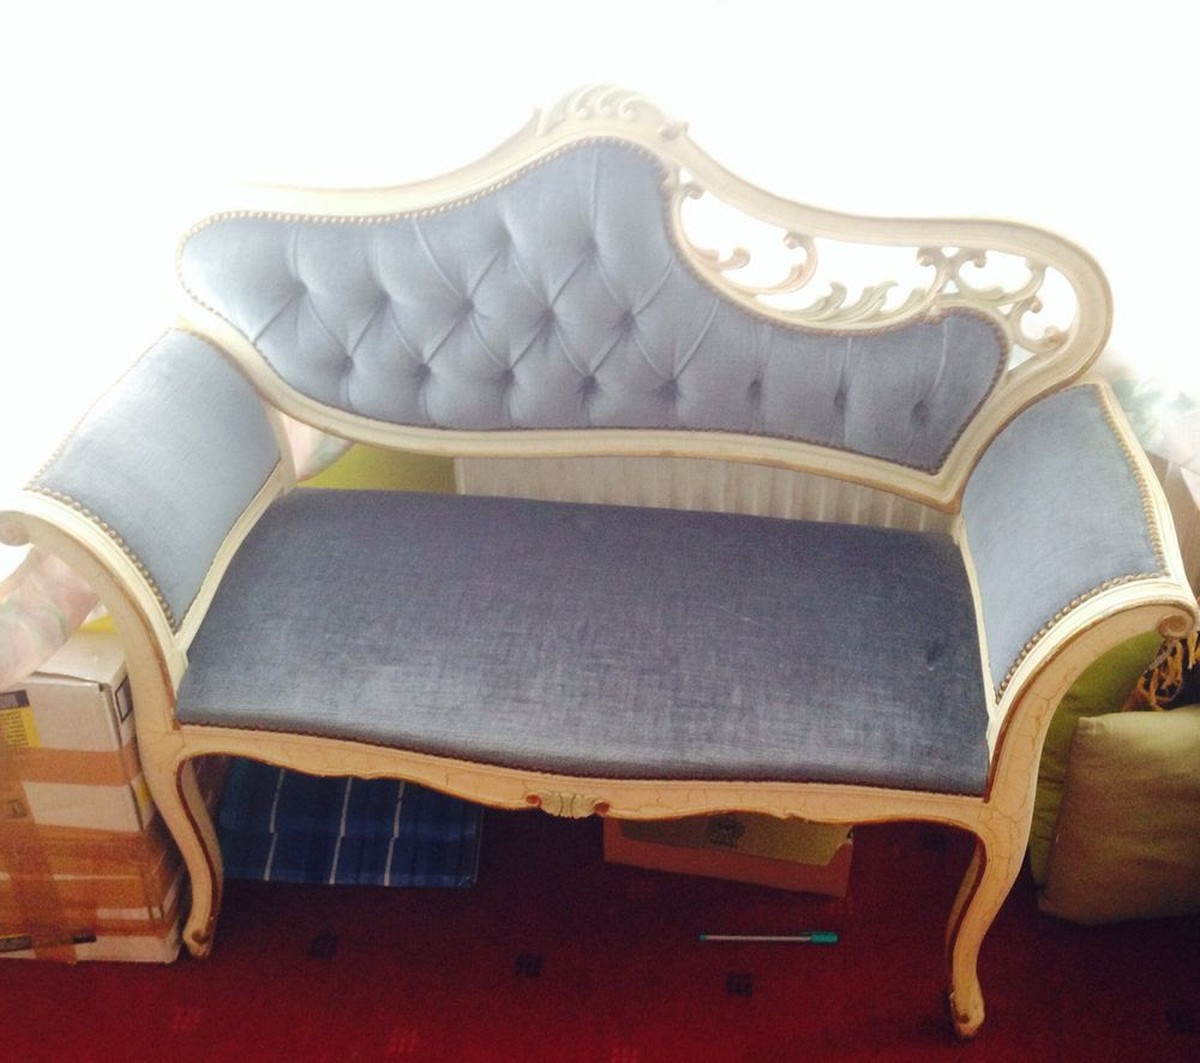 Secondhand prop shop lounge furniture vintage chaise for Chaise for sale